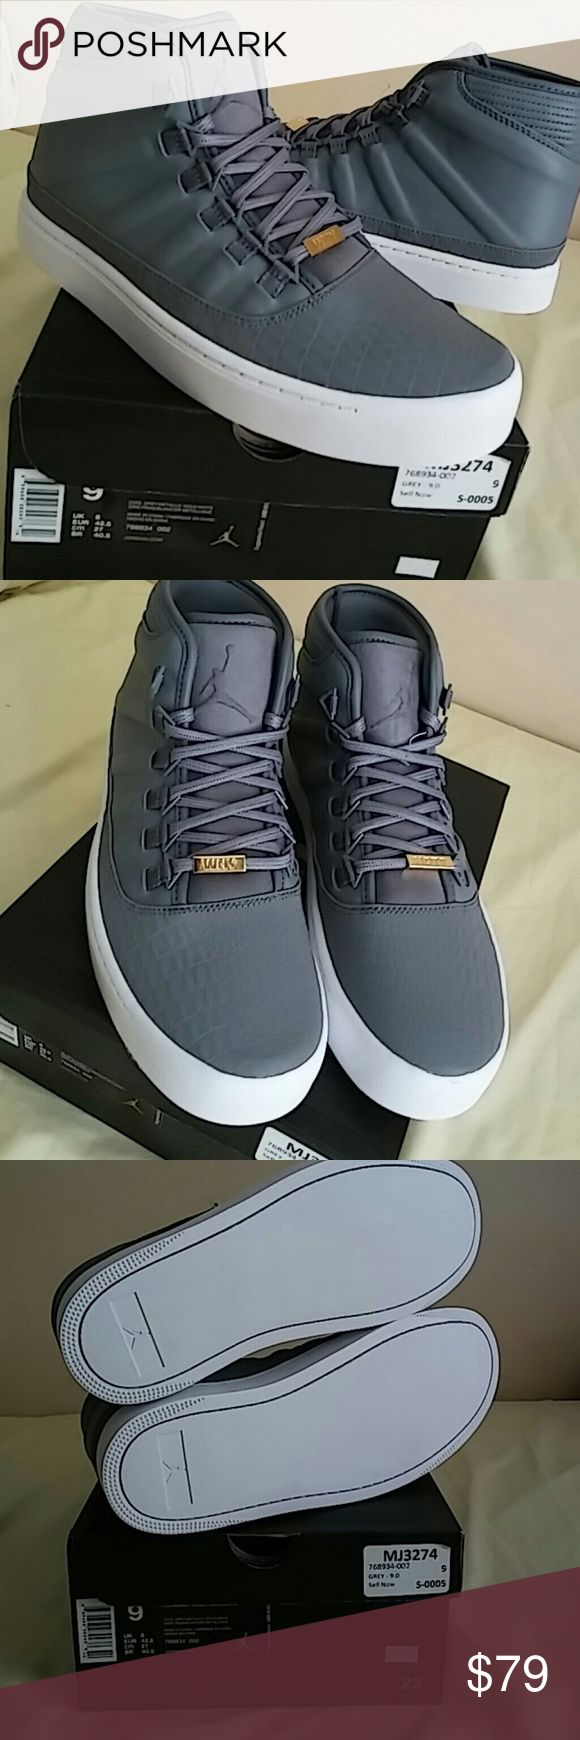 BRAND NEW Nike Air Jordan Westbrook O Brand New in original box. Never tried on or used. Nike Shoes Sneakers